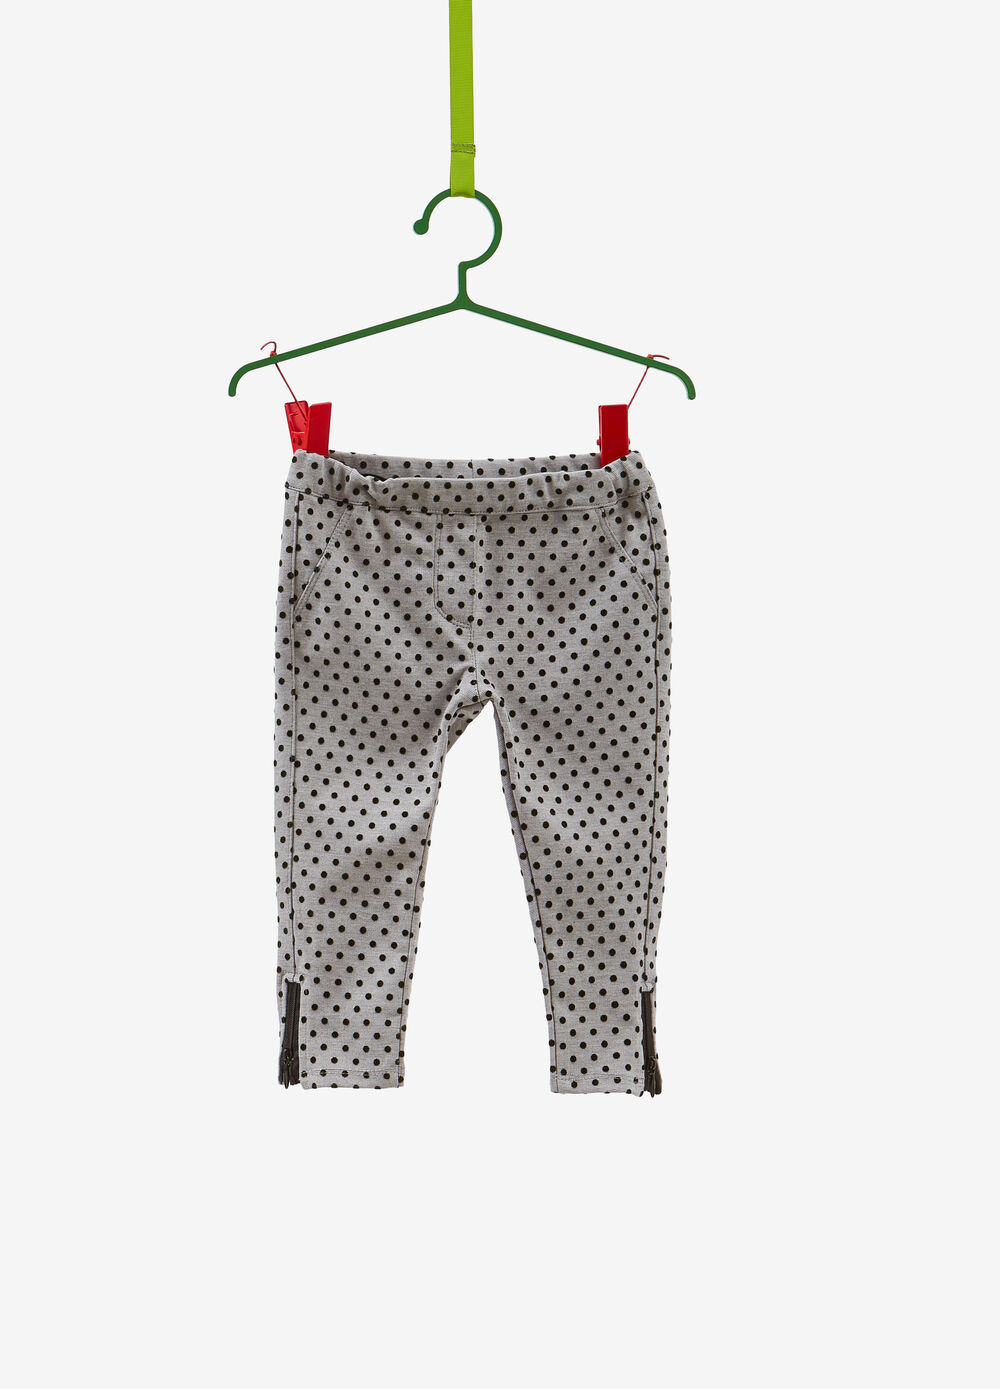 Stretch trousers with polka dot pattern